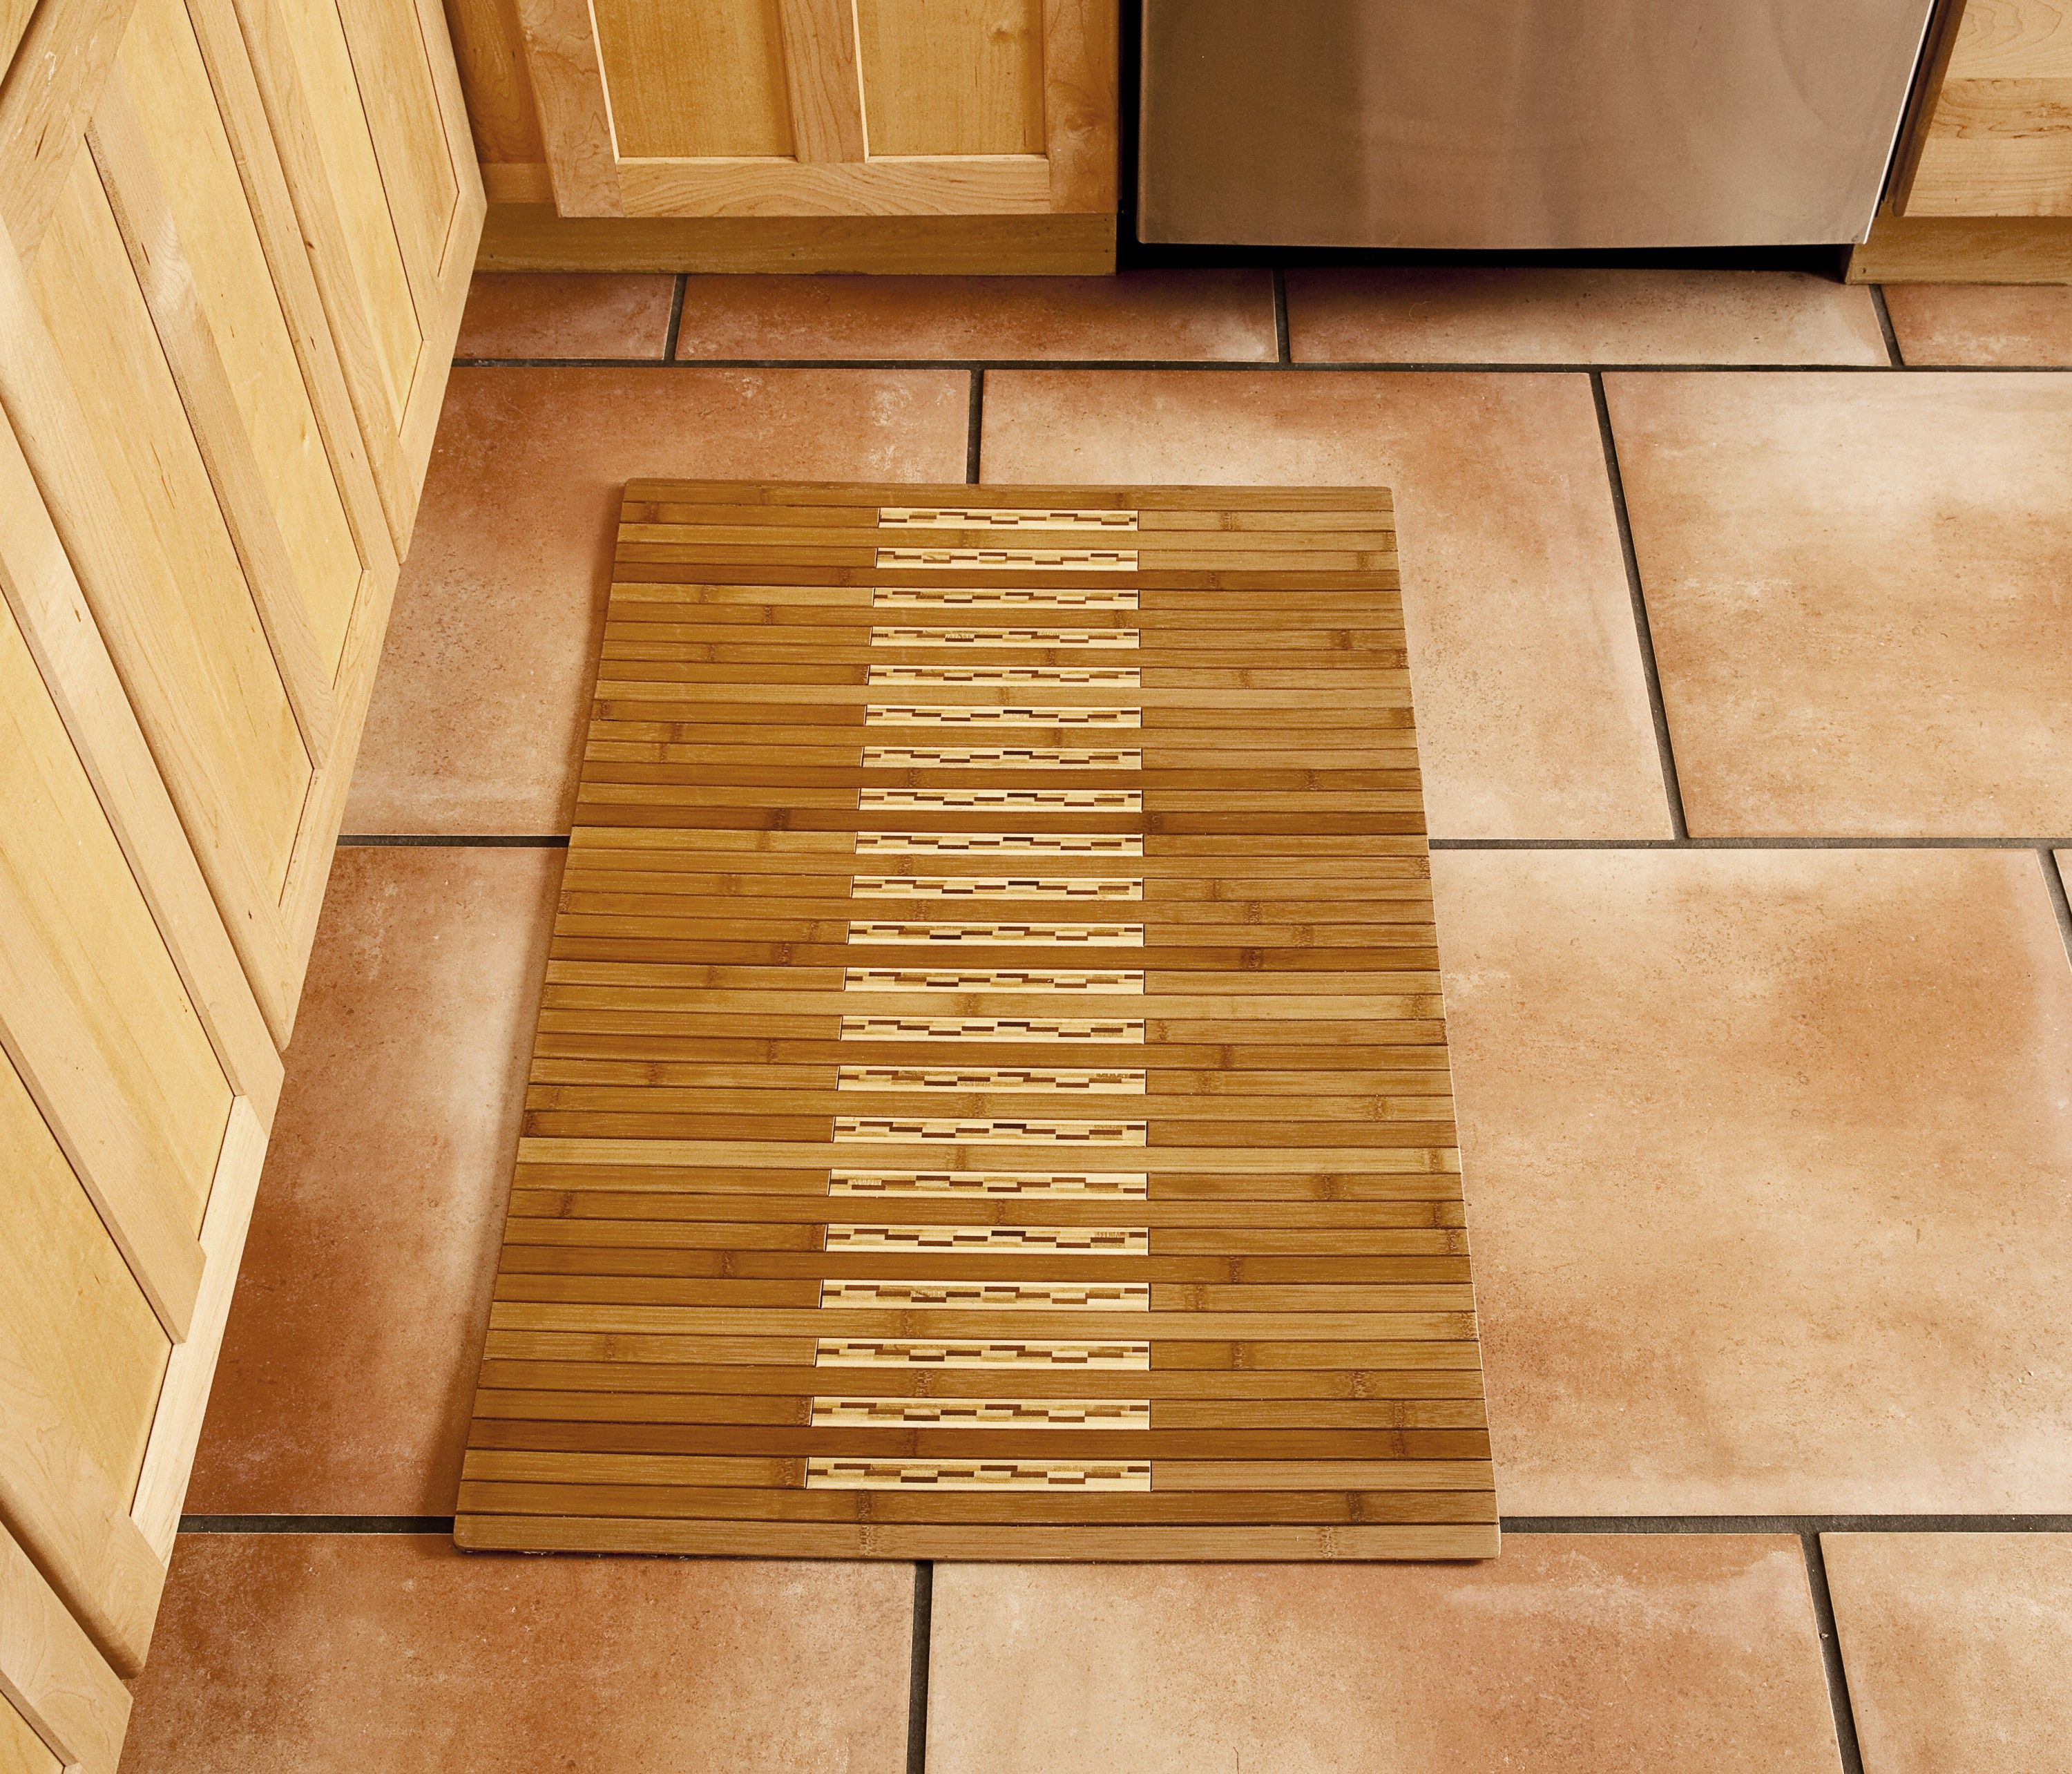 Bamboo Kitchen Bath Mat Natural X Bamboo Mats Have - Rubber backed bath mats for bathroom decorating ideas